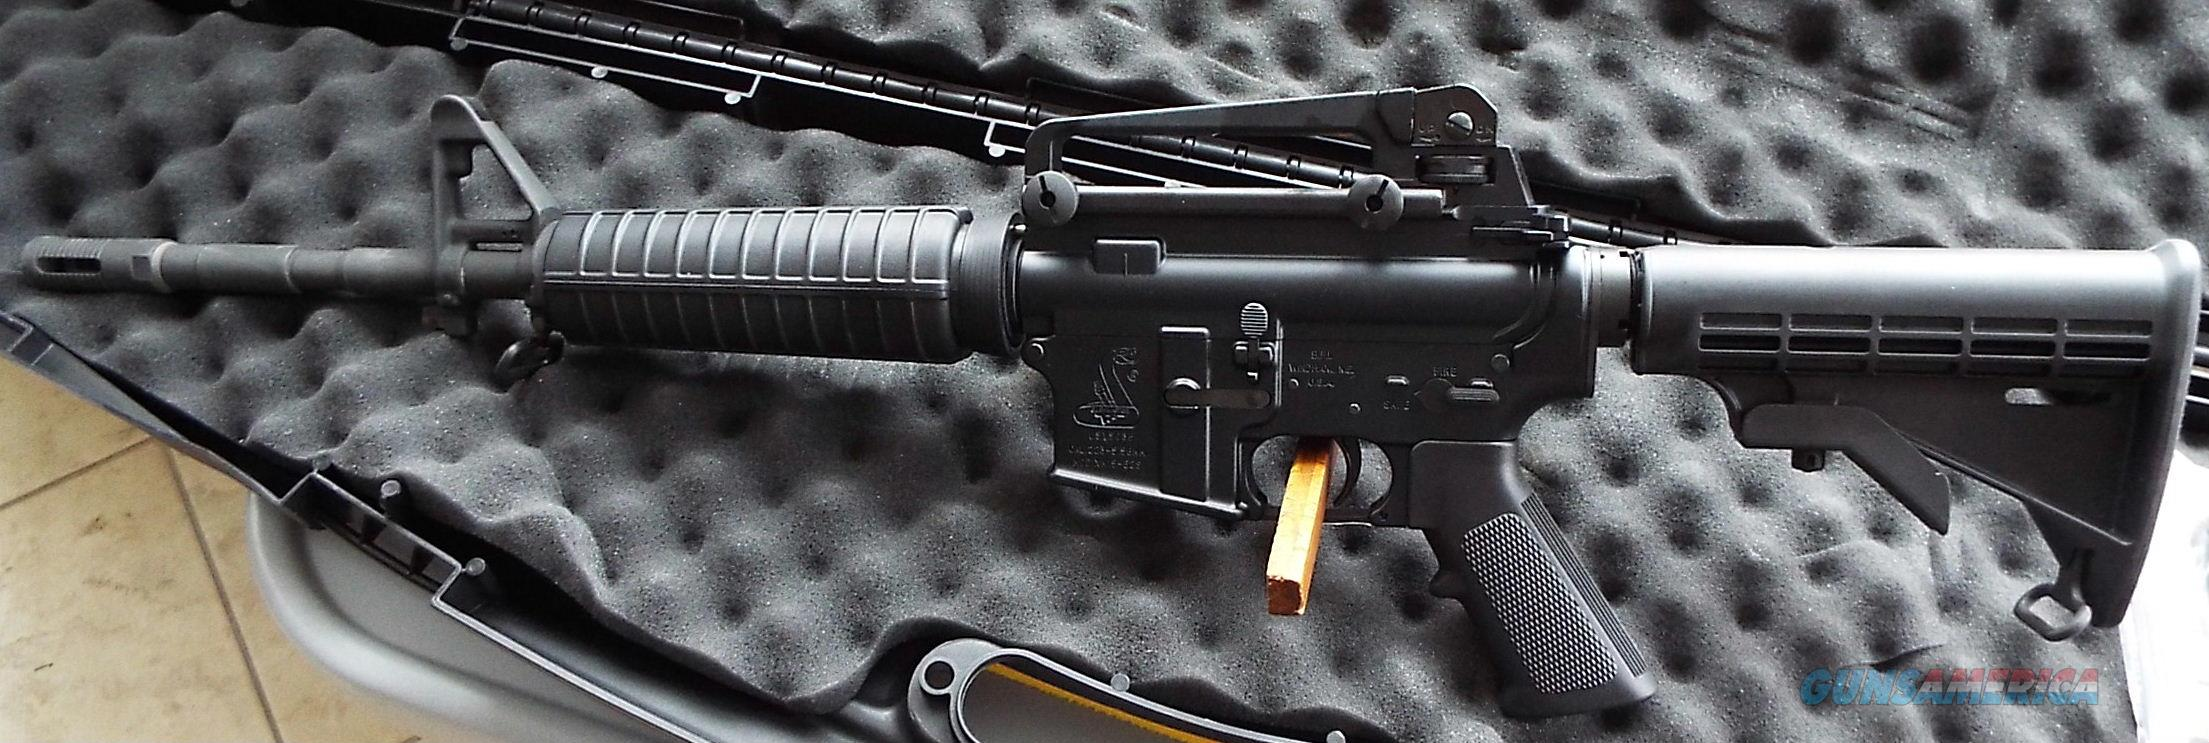 BushMaster M4 A3 Carbine 14.5 in. w/ IZZY  223 Rem./ 5.56 NATO     New!     LAYAWAY OPTION  Guns > Rifles > Bushmaster Rifles > Complete Rifles